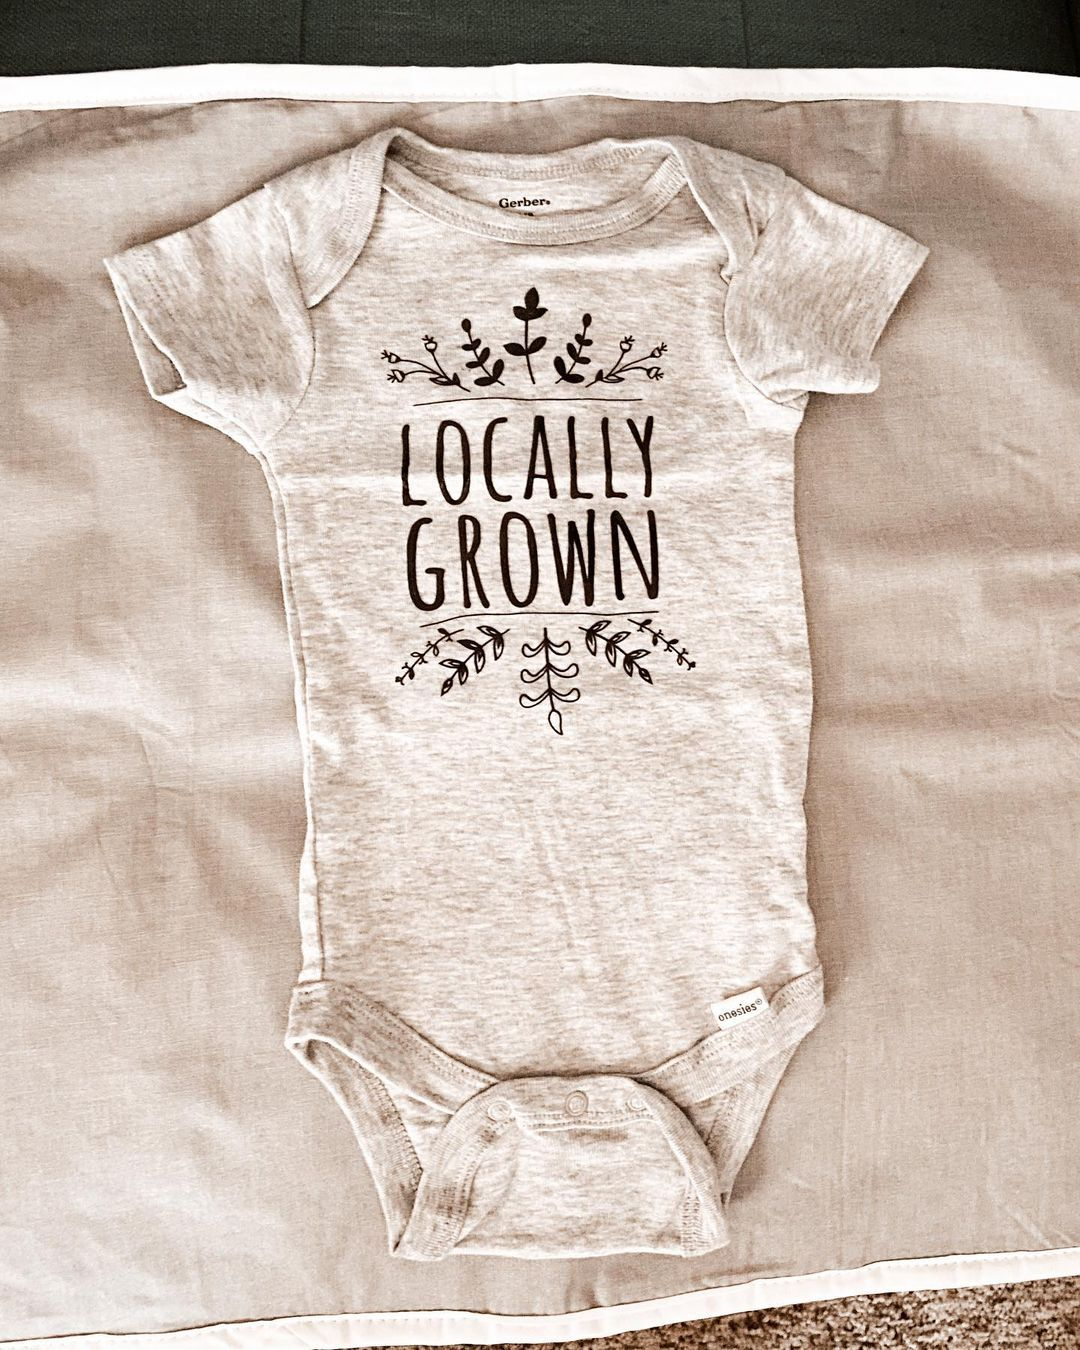 Really close to launching my shop! What do y'all think of these? Feedback appreciated! 🤩 . . . #smallbusiness #smallbusinessowner #smallbiz #craftersofinstagram #craftroomideas #crafting #crafts #etsysellersofinstagram #etsyshop #etsyshopowner #etsyseller #heattransfervinyl #cricutmade #onesie #baby #newmom